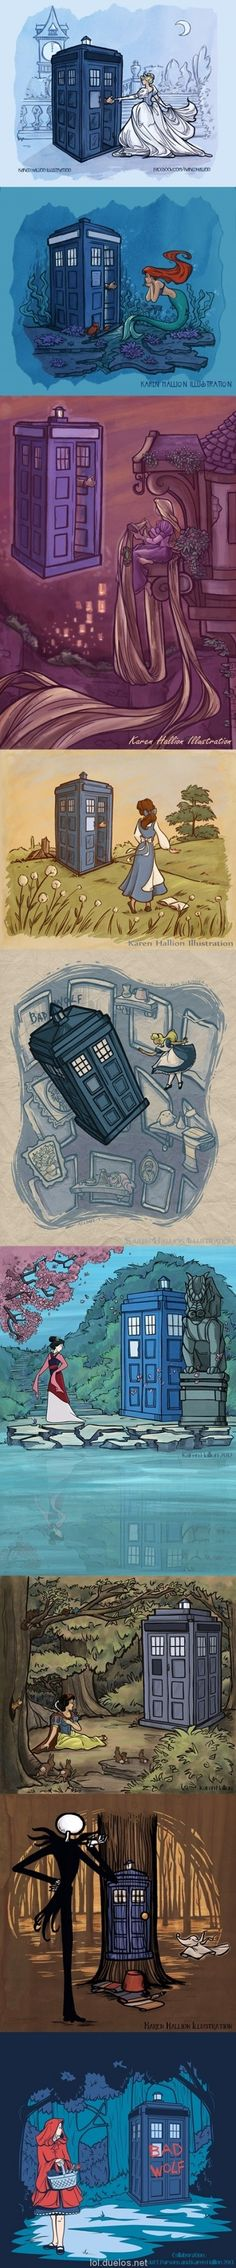 Doctor Who & Disney Princess